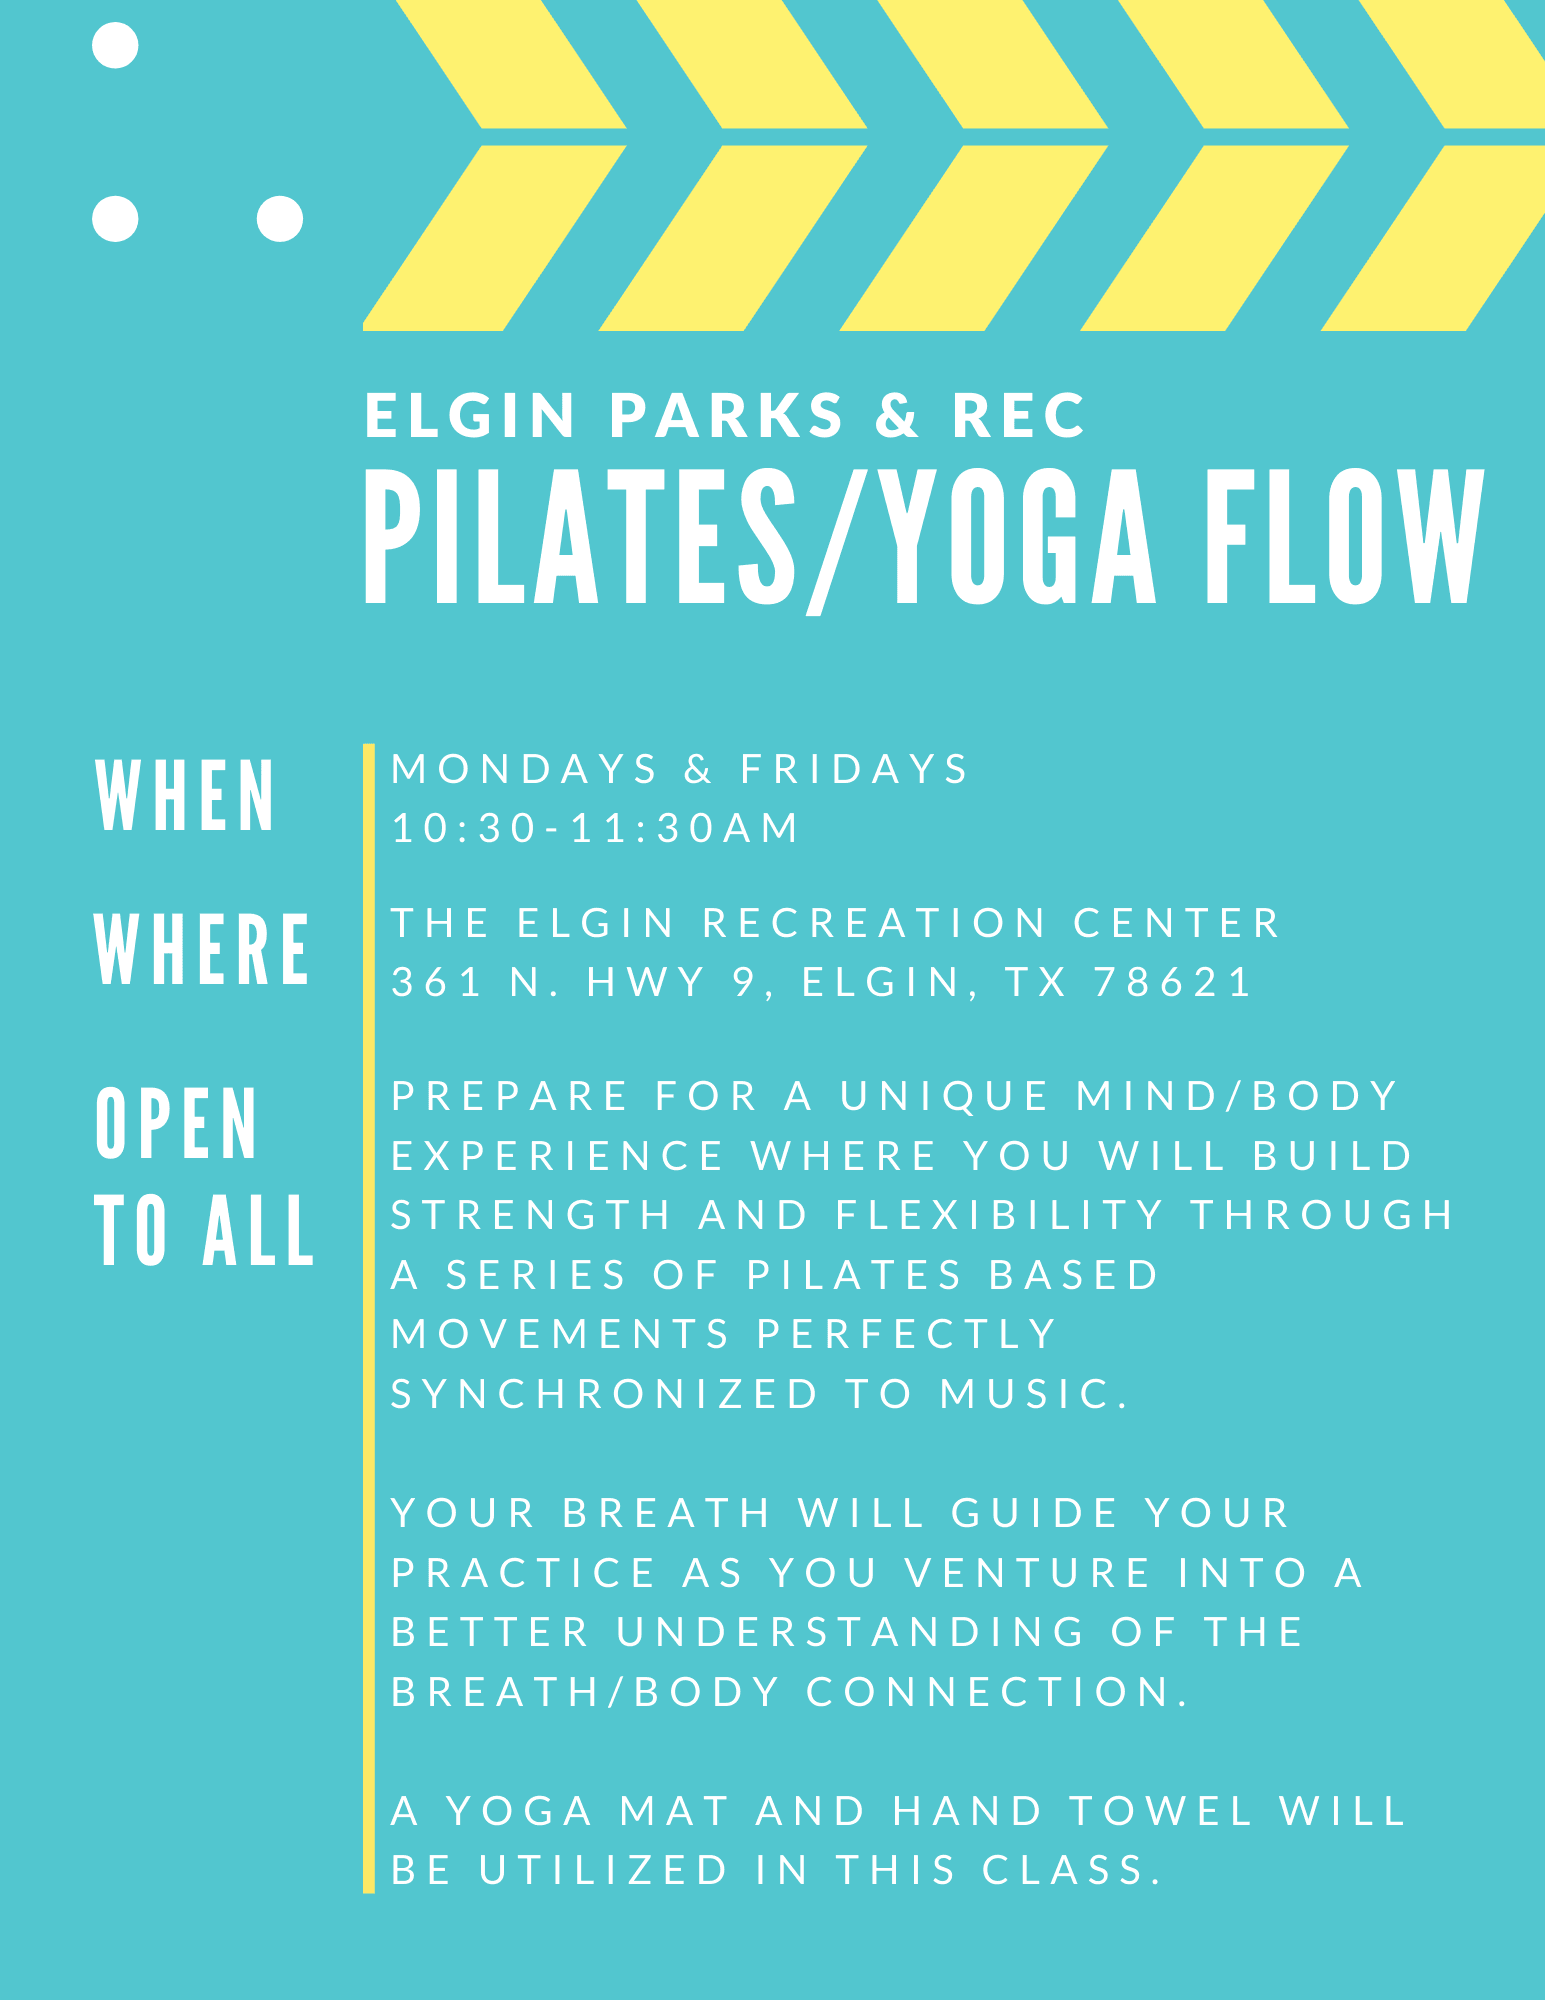 pilates and yoga flow mondays and fridays